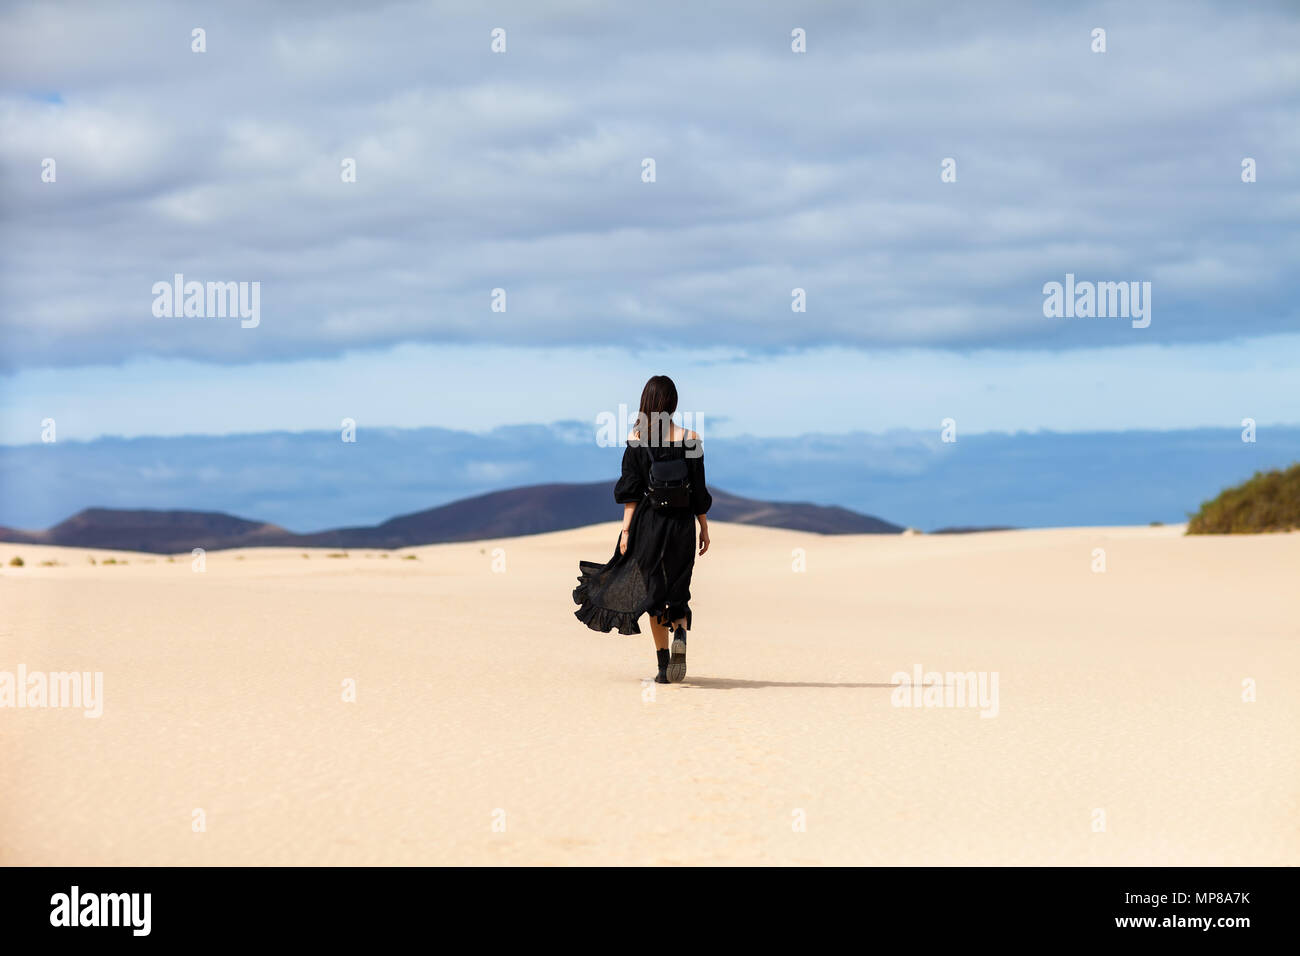 Full length portrait of lonely woman walks away in desert on Canary Islands. Travel concept Stock Photo